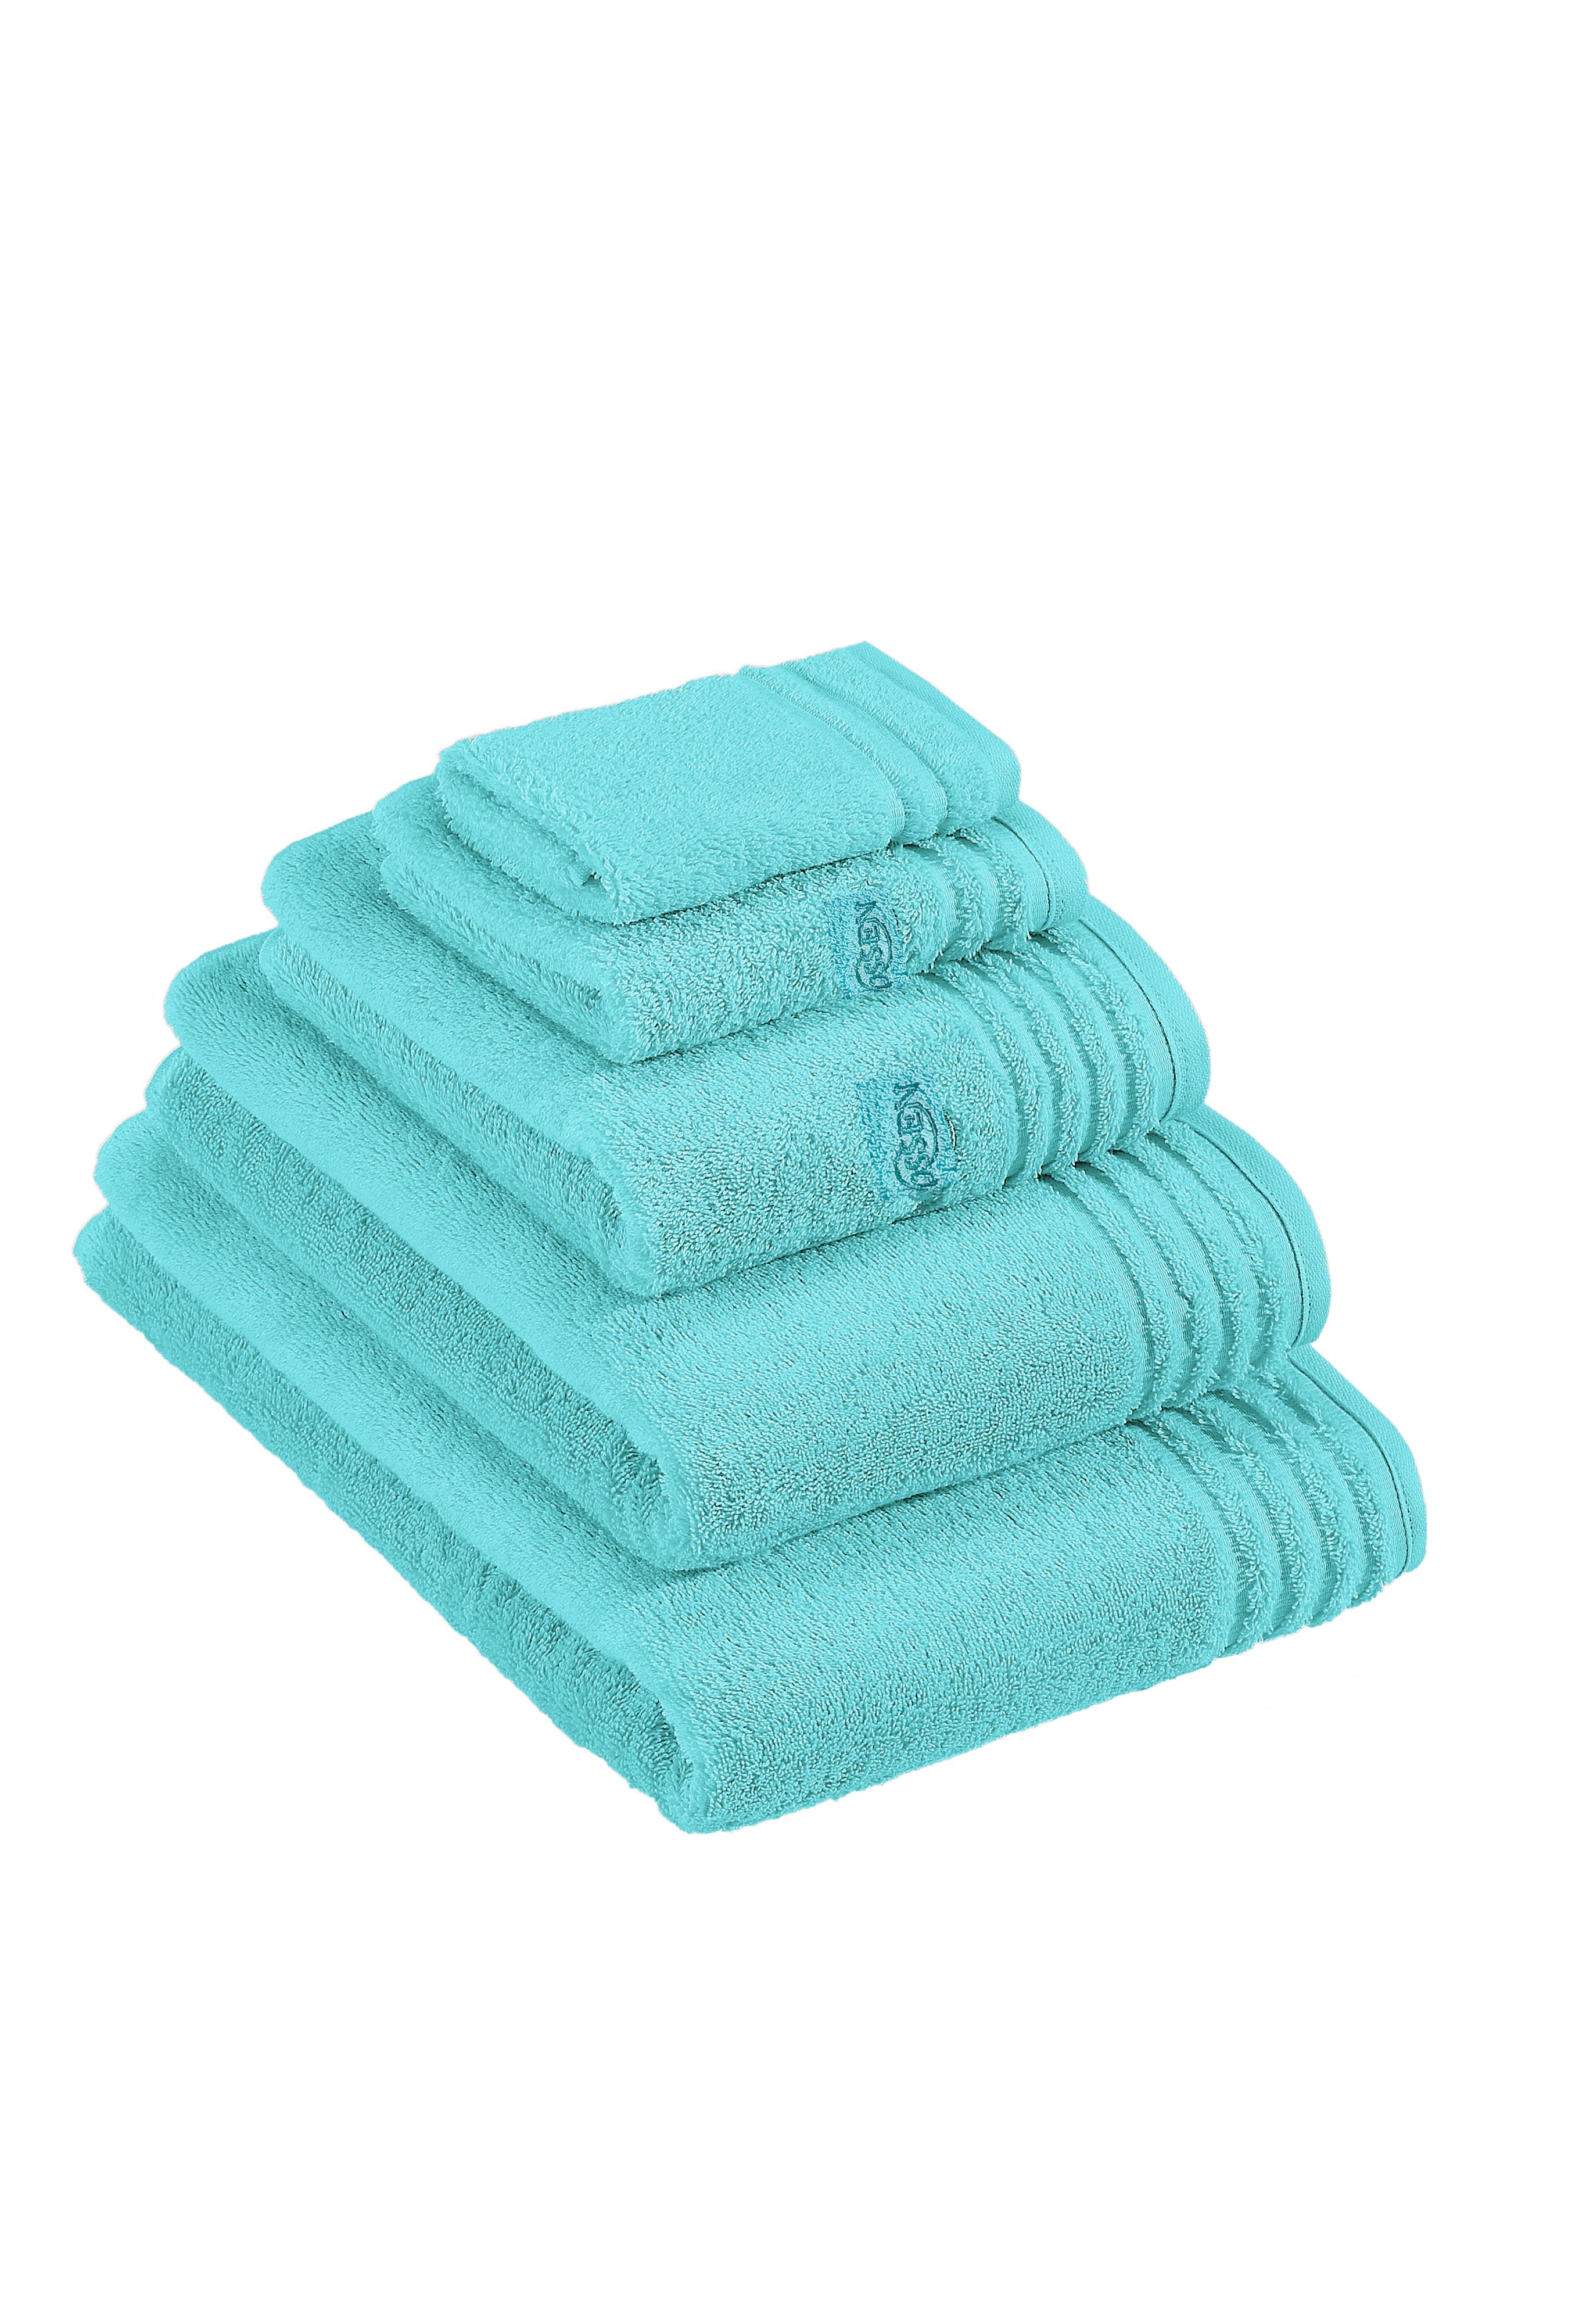 Vienna towel range in azure